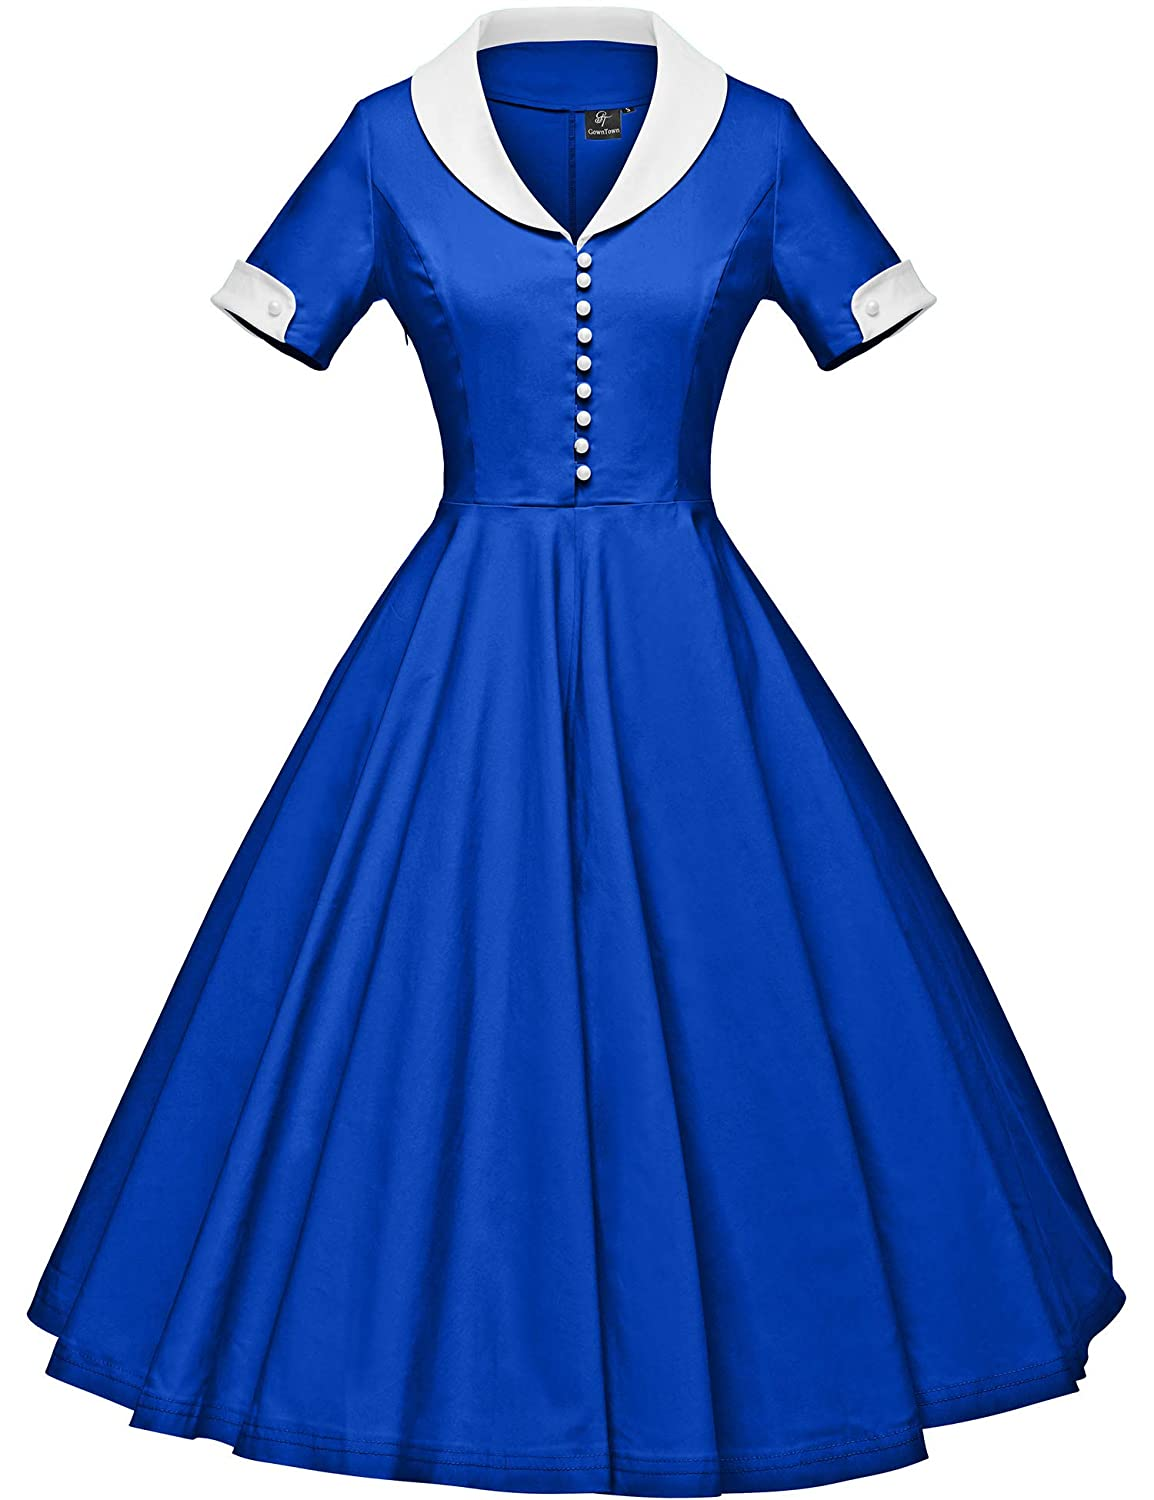 1950s Dresses, 50s Dresses | 1950s Style Dresses GownTown Womens 1950s Cape Collar Vintage Swing Stretchy Dresses $35.99 AT vintagedancer.com